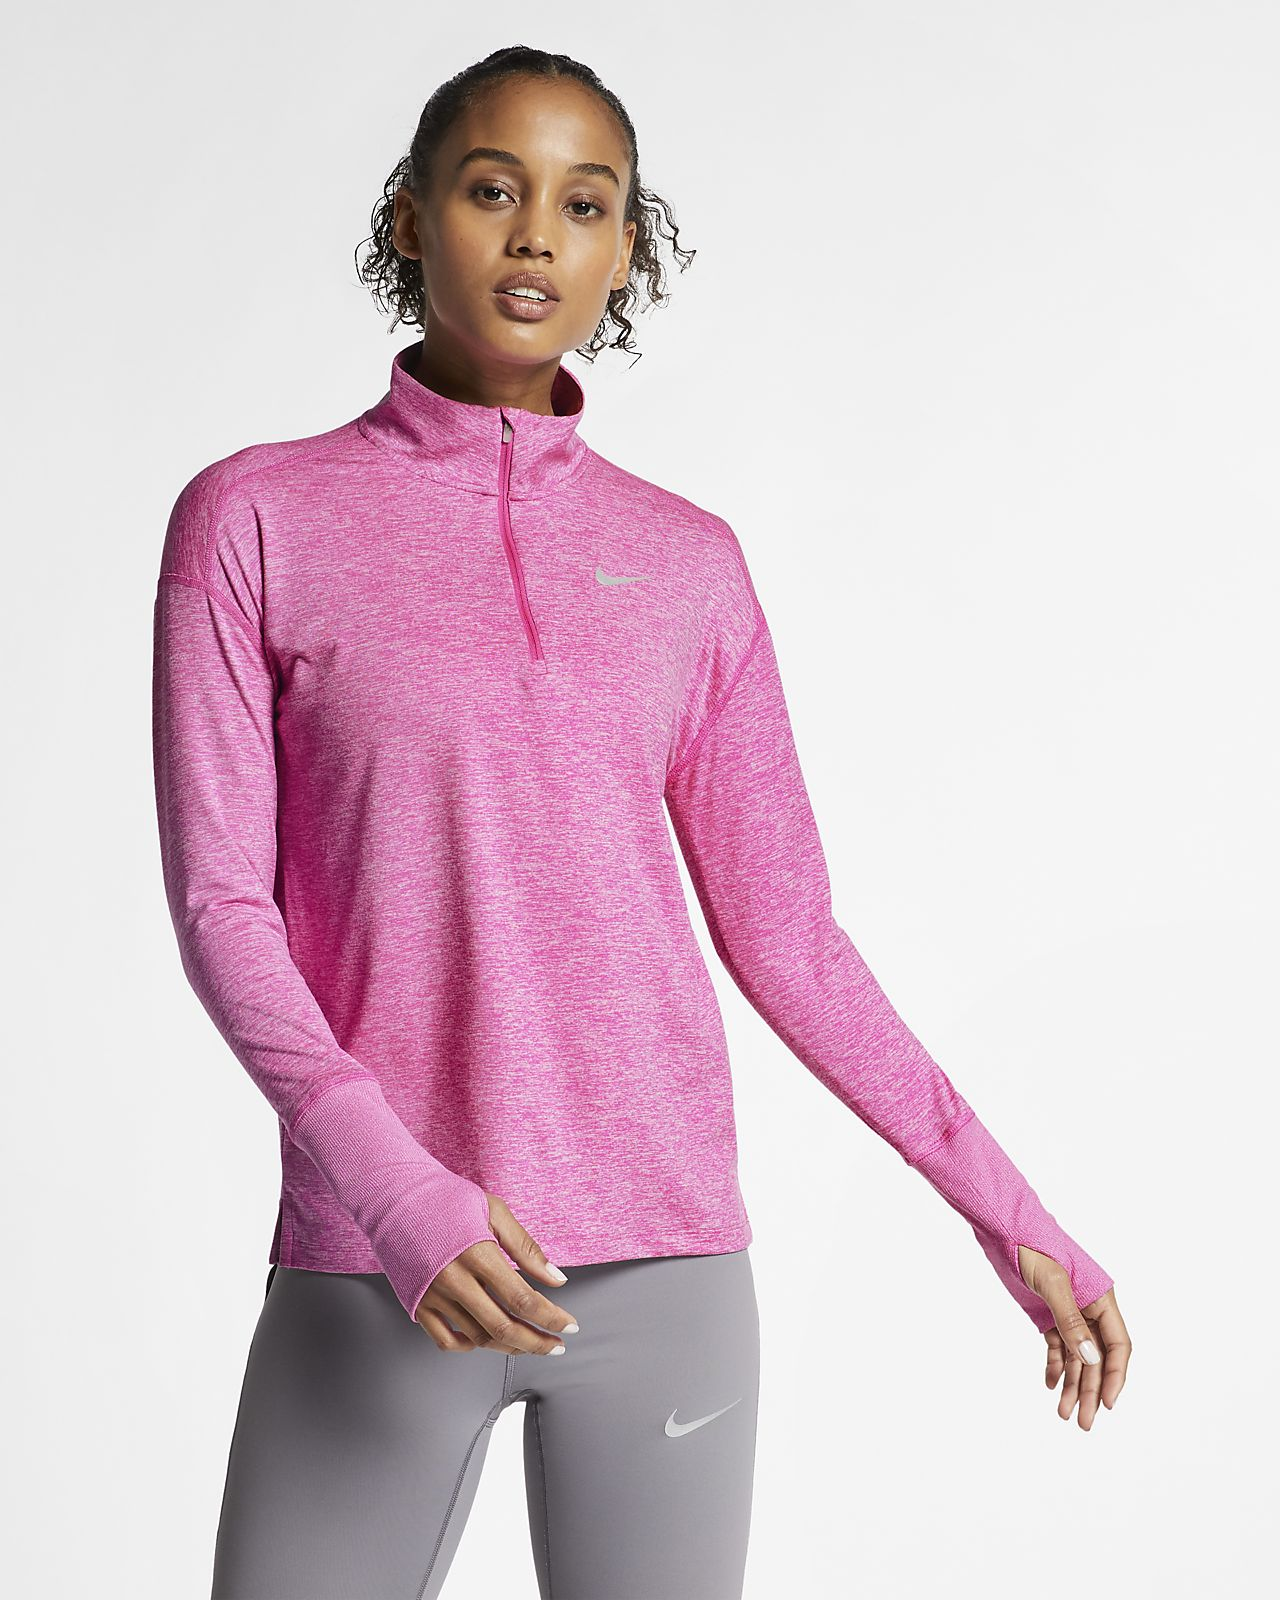 09b99af2 Nike Women's Half-Zip Running Top. Nike.com GB